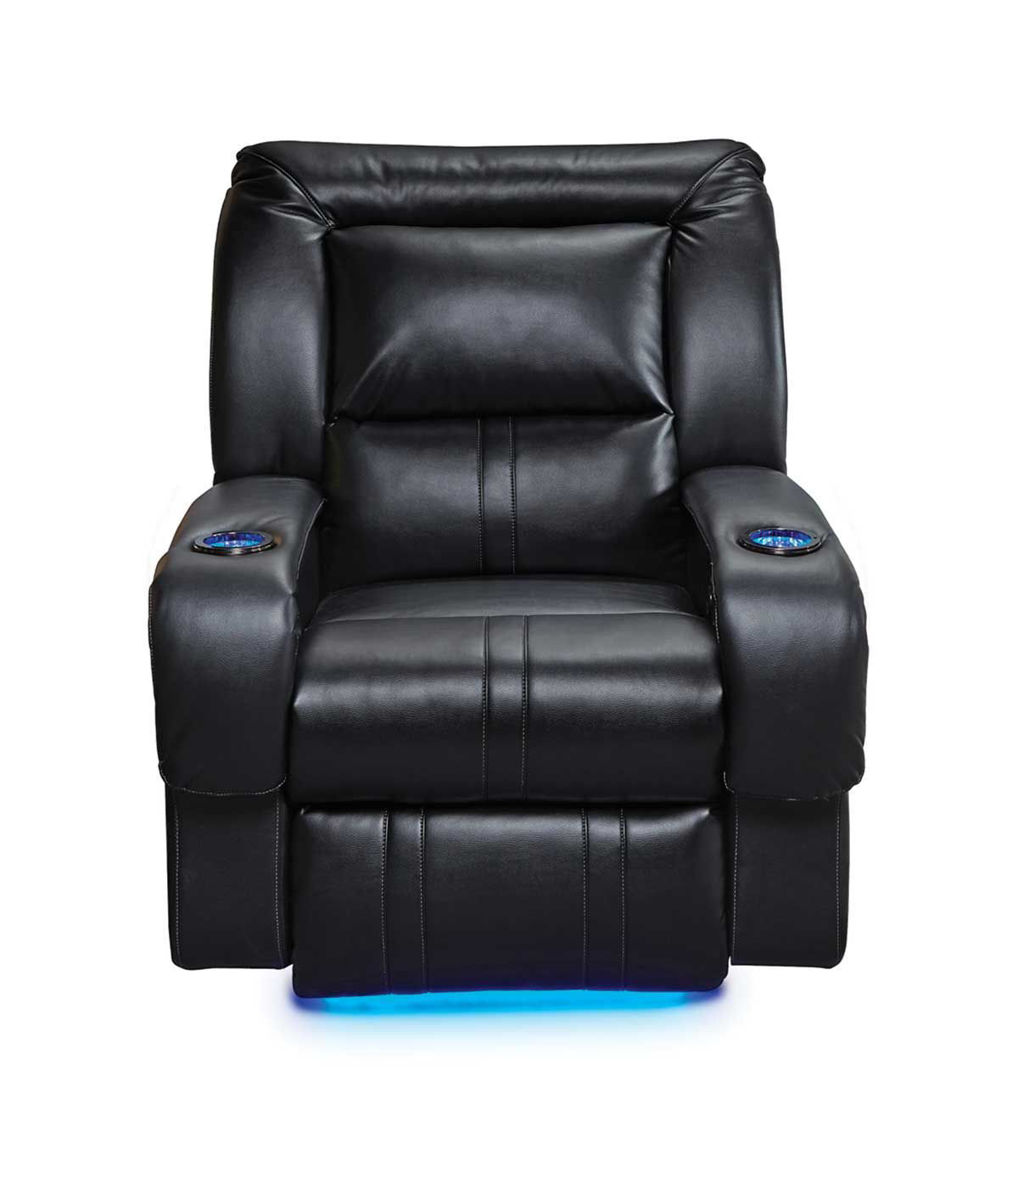 Remarkable Theater Power Recliner Ibusinesslaw Wood Chair Design Ideas Ibusinesslaworg